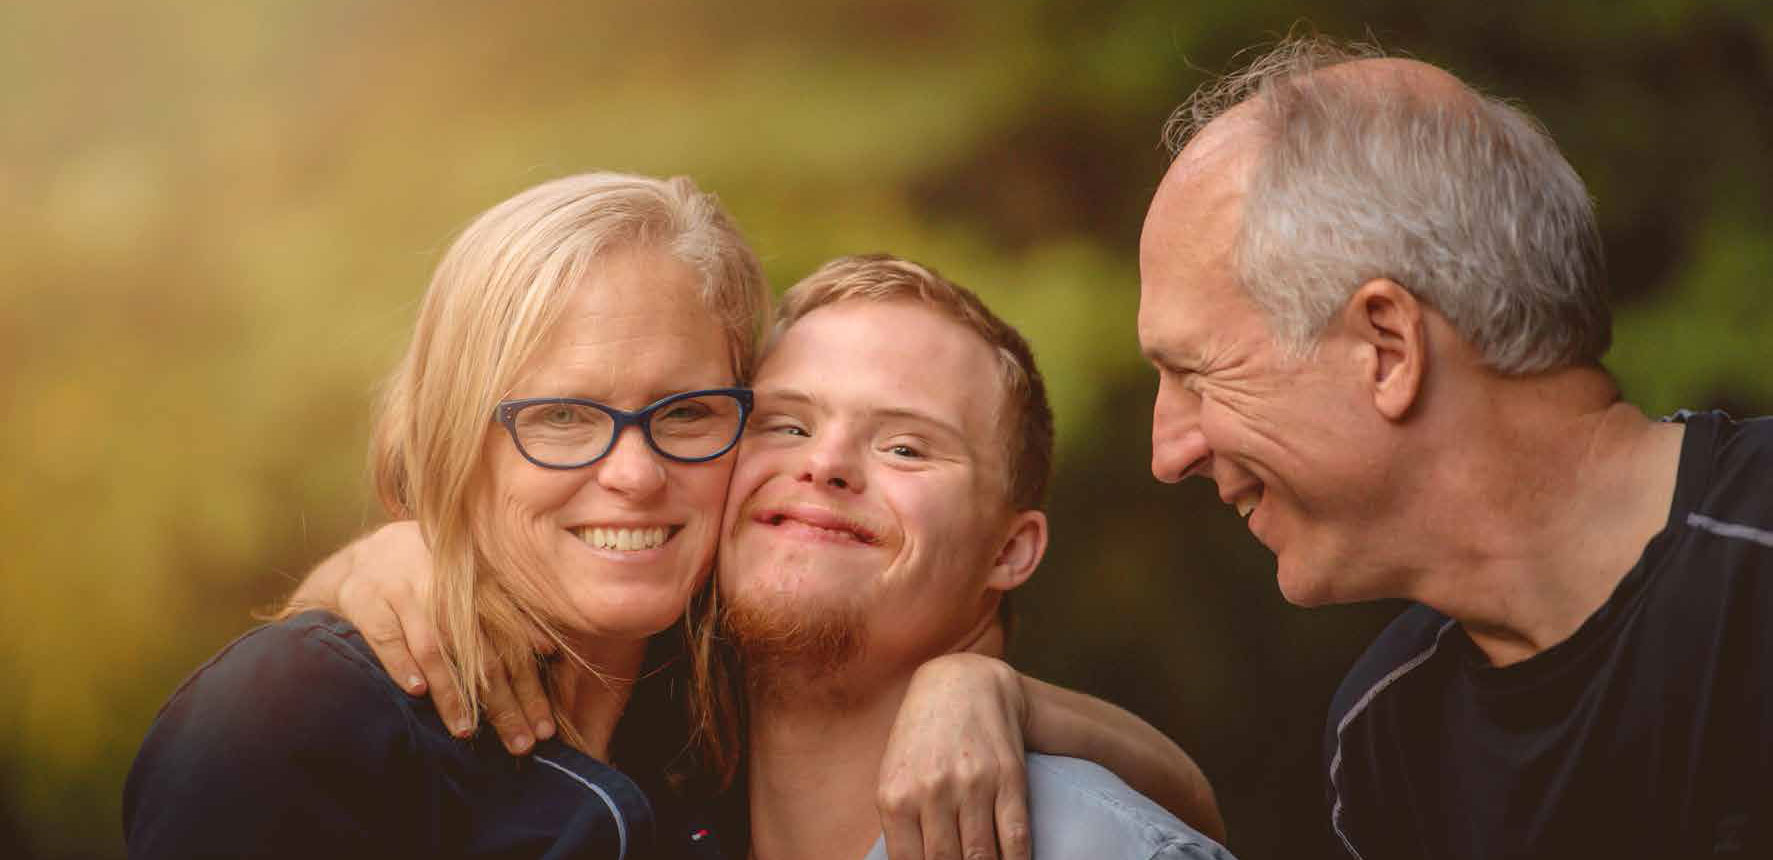 Couple smiling at foster son